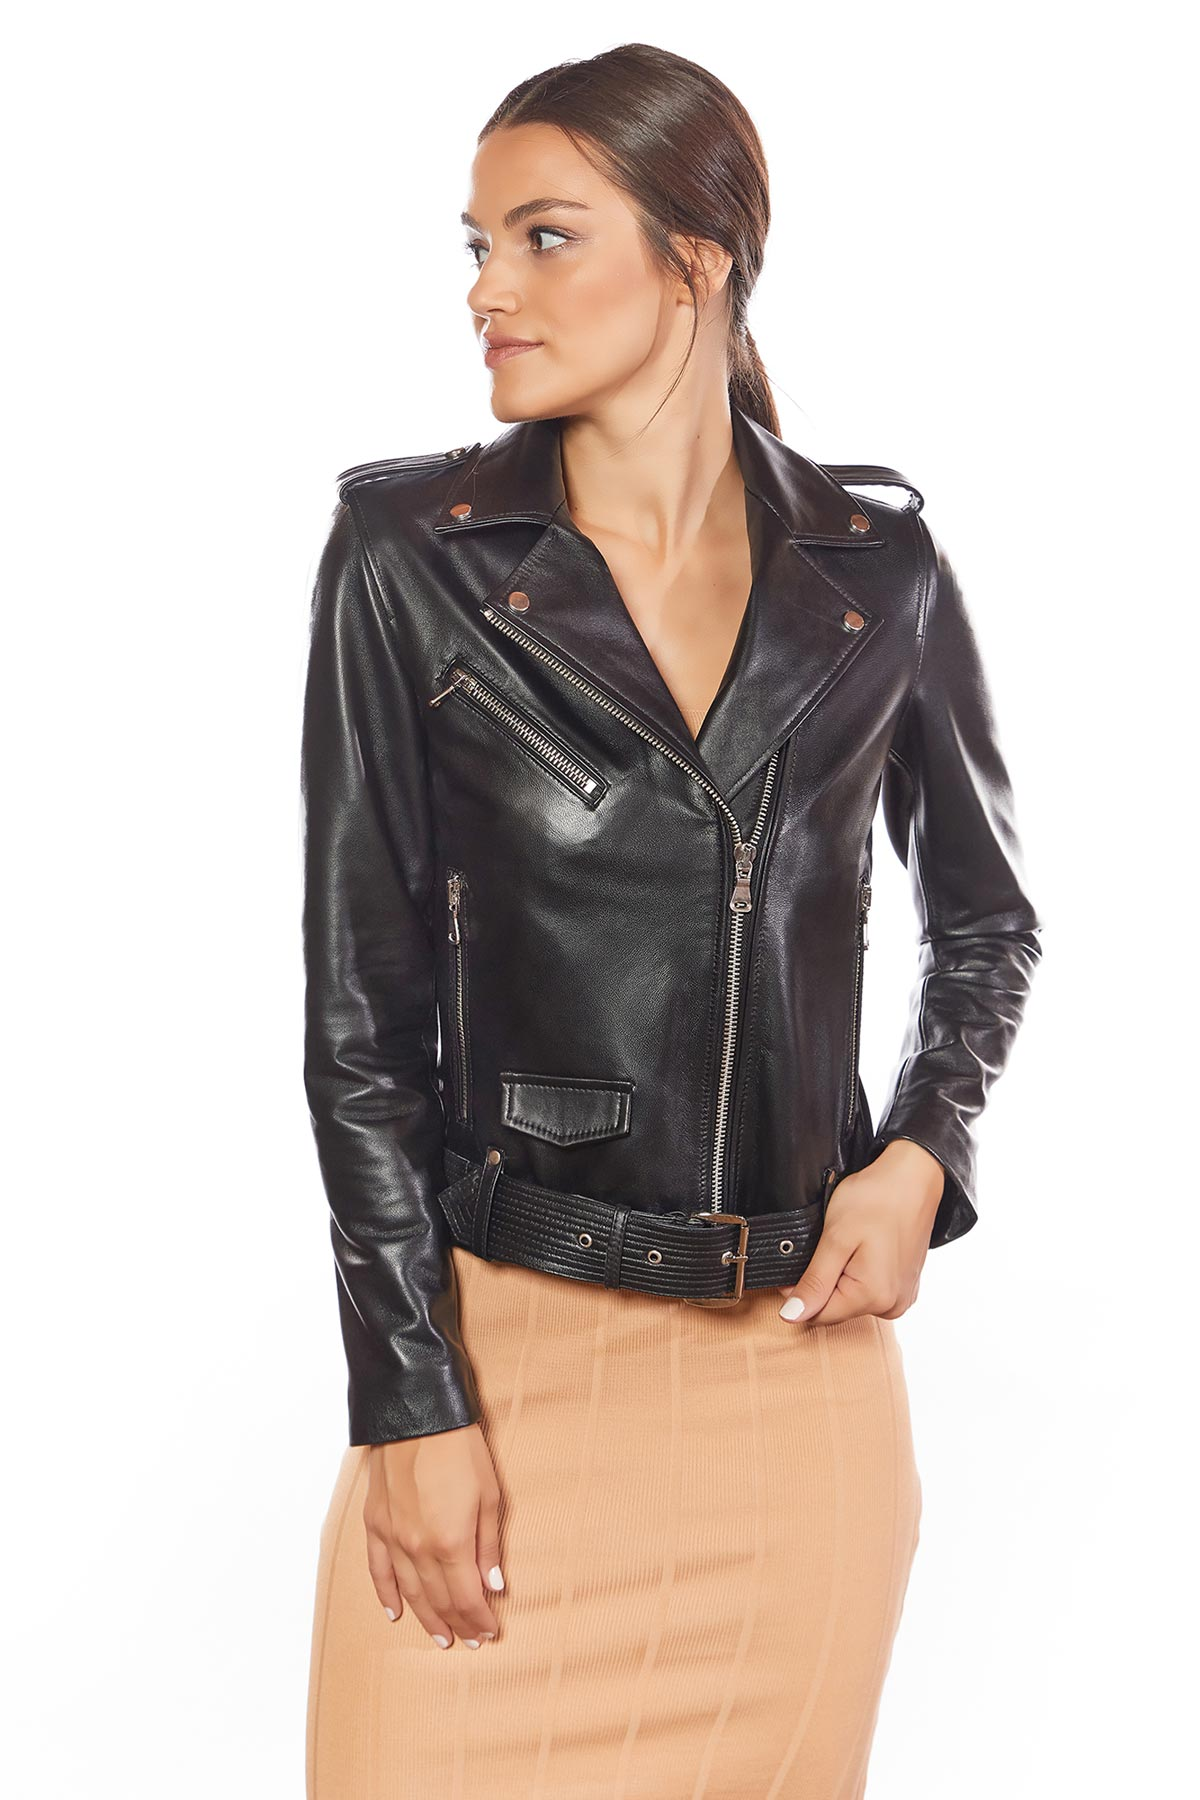 real leather jackets under $200